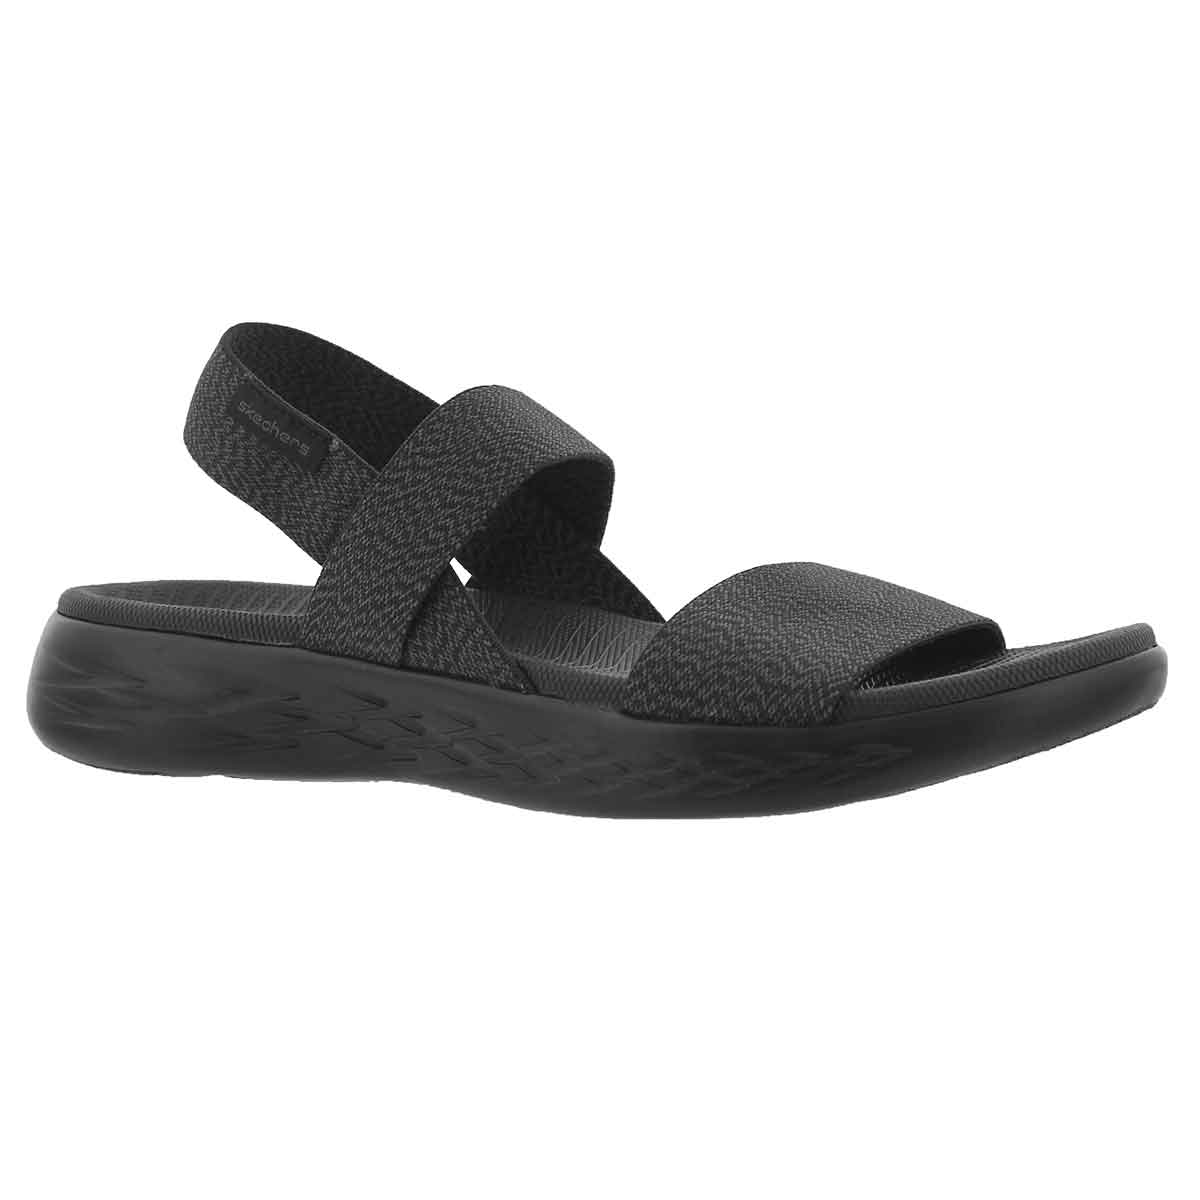 Women's ON THE GO 600 IDEAL black sport sandals